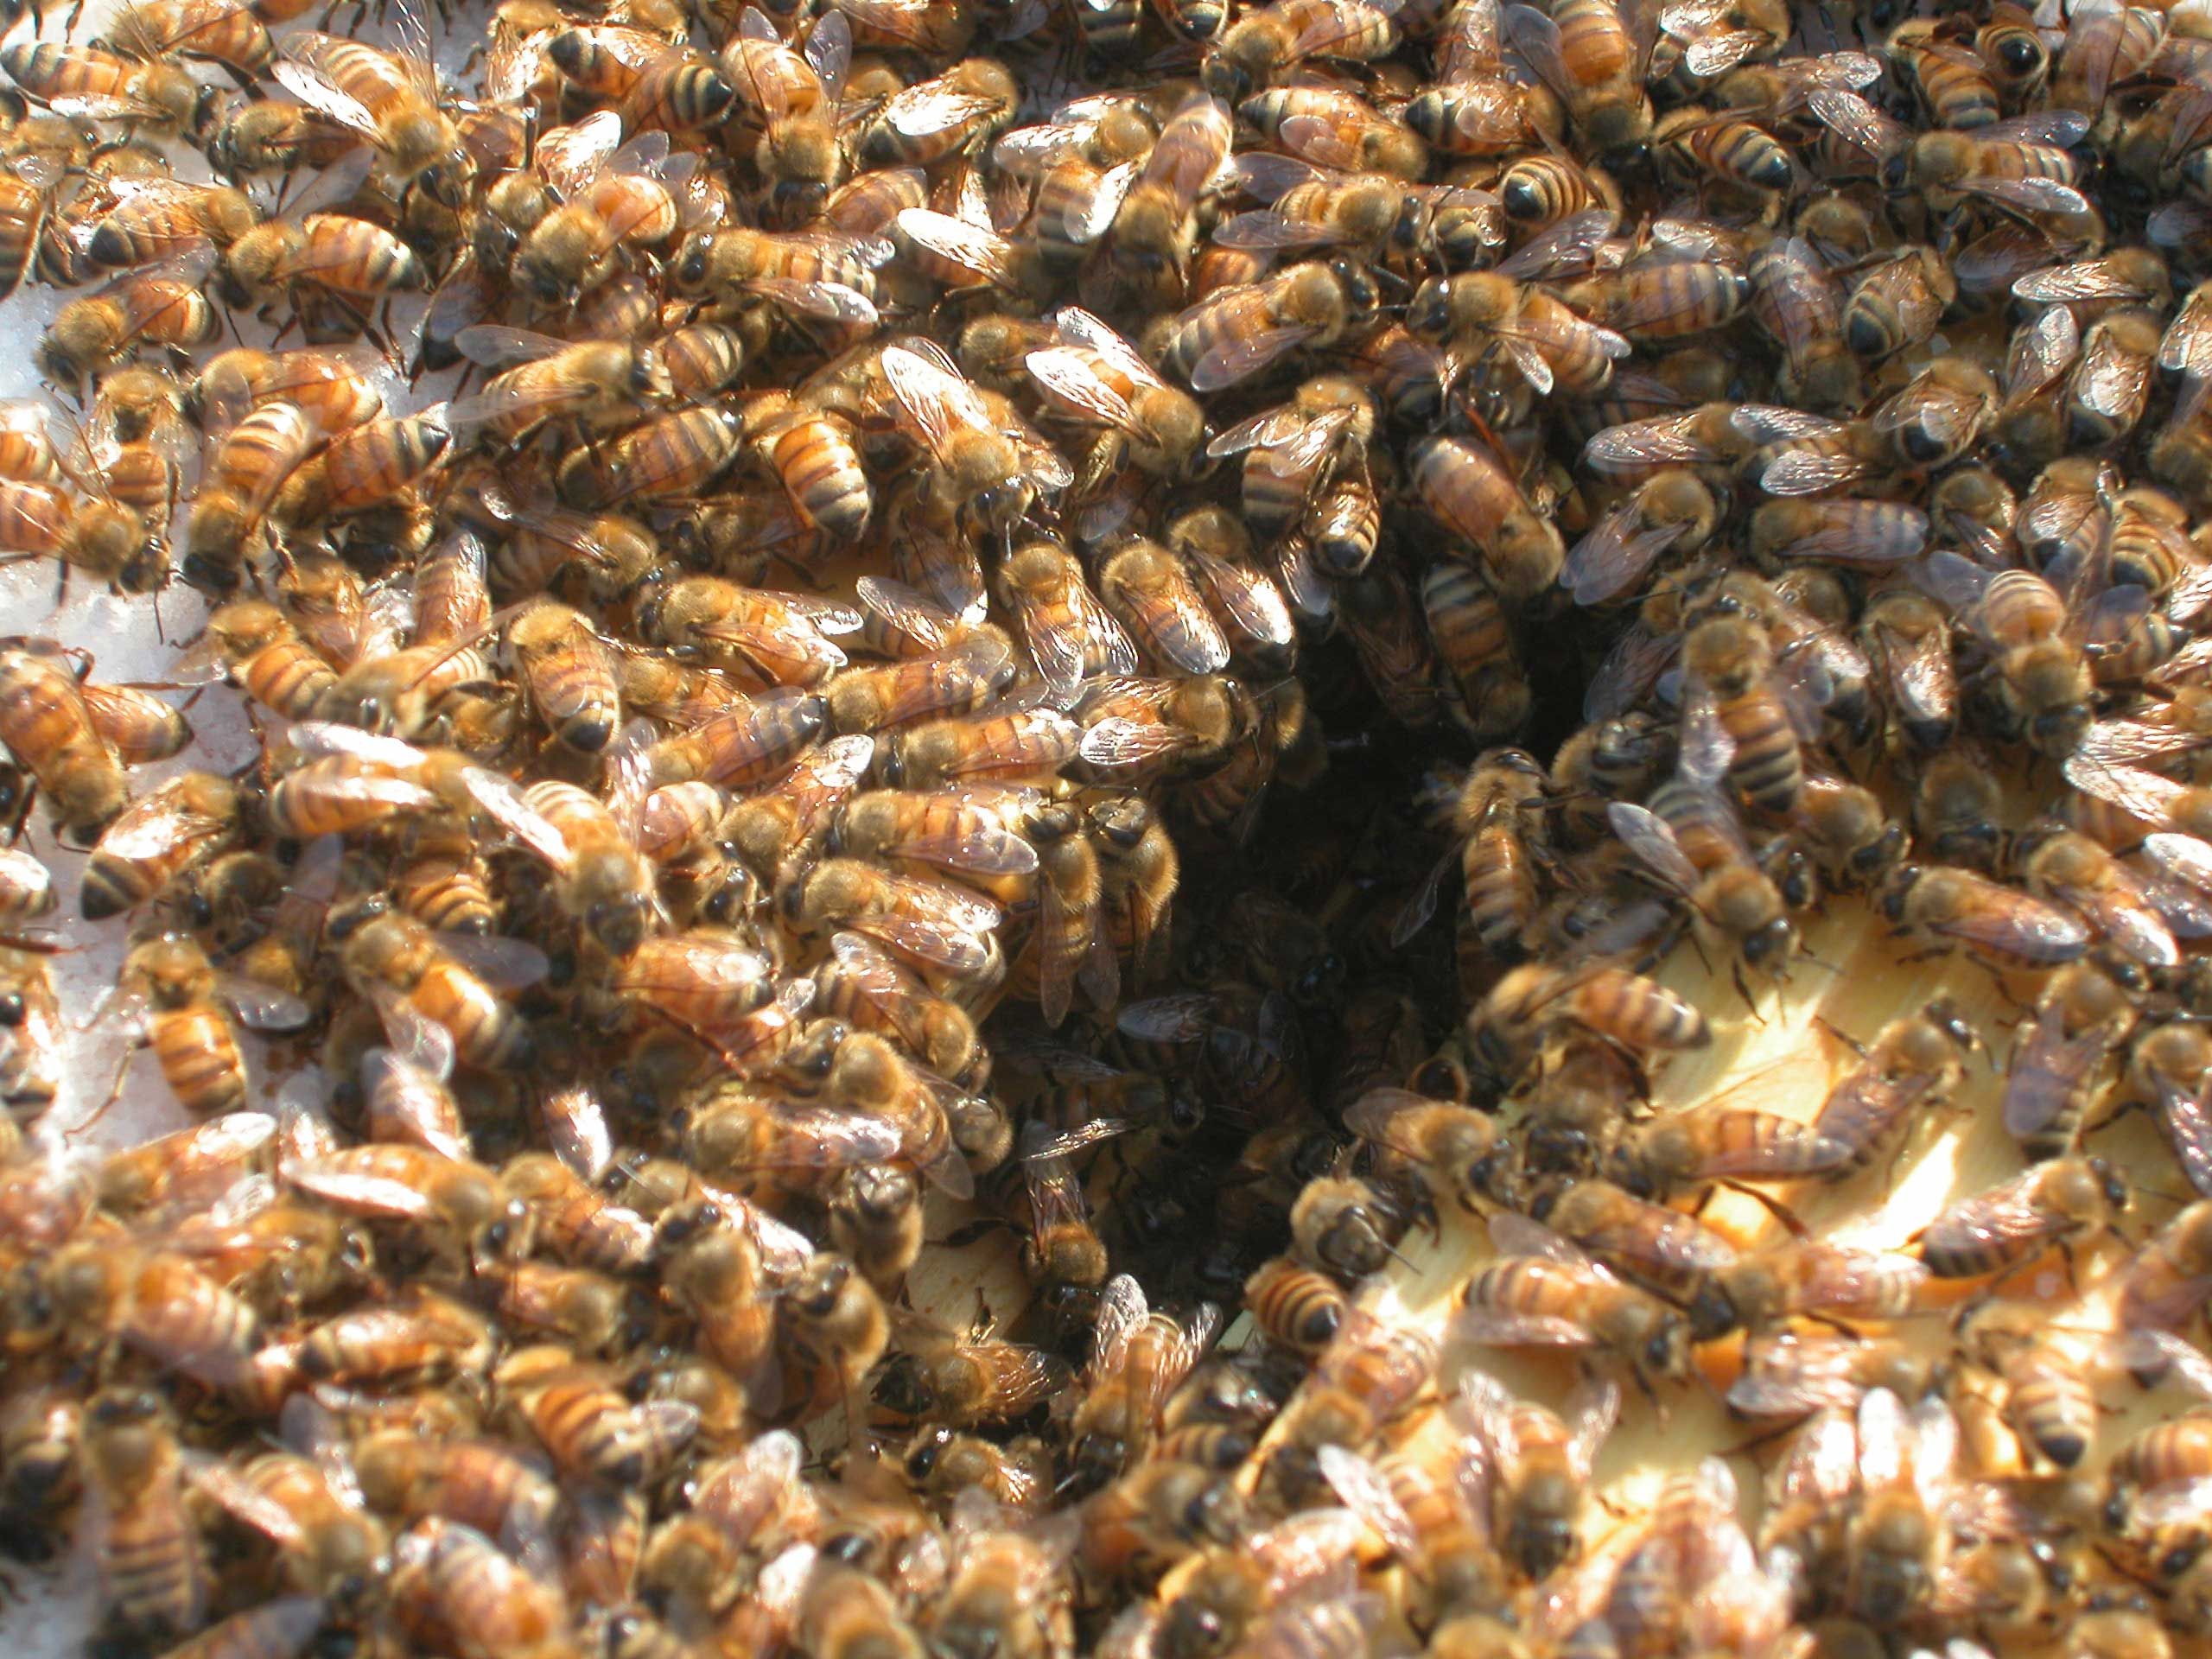 bees eating sugar at the monastery